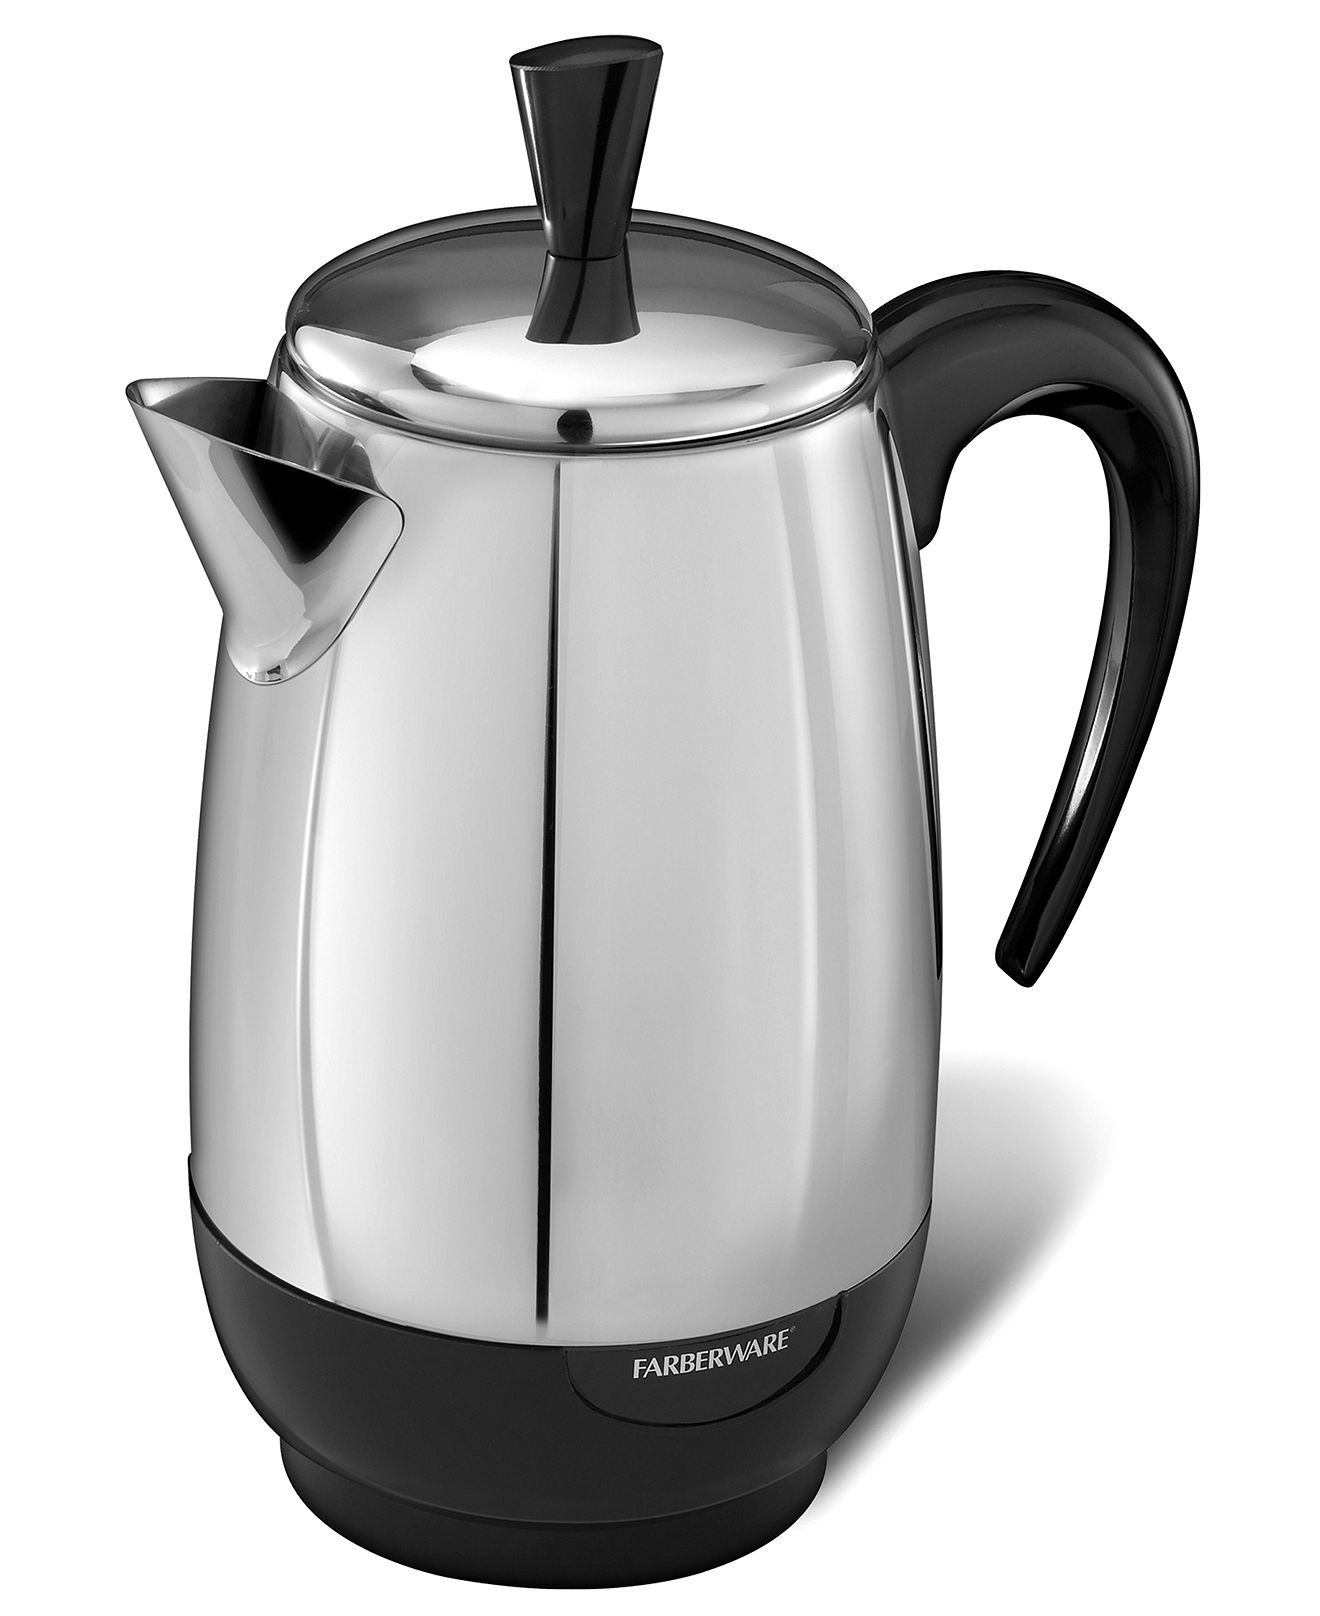 Farberware Pk8000ss Percolator Stainless Steel 8 Cup Coffee